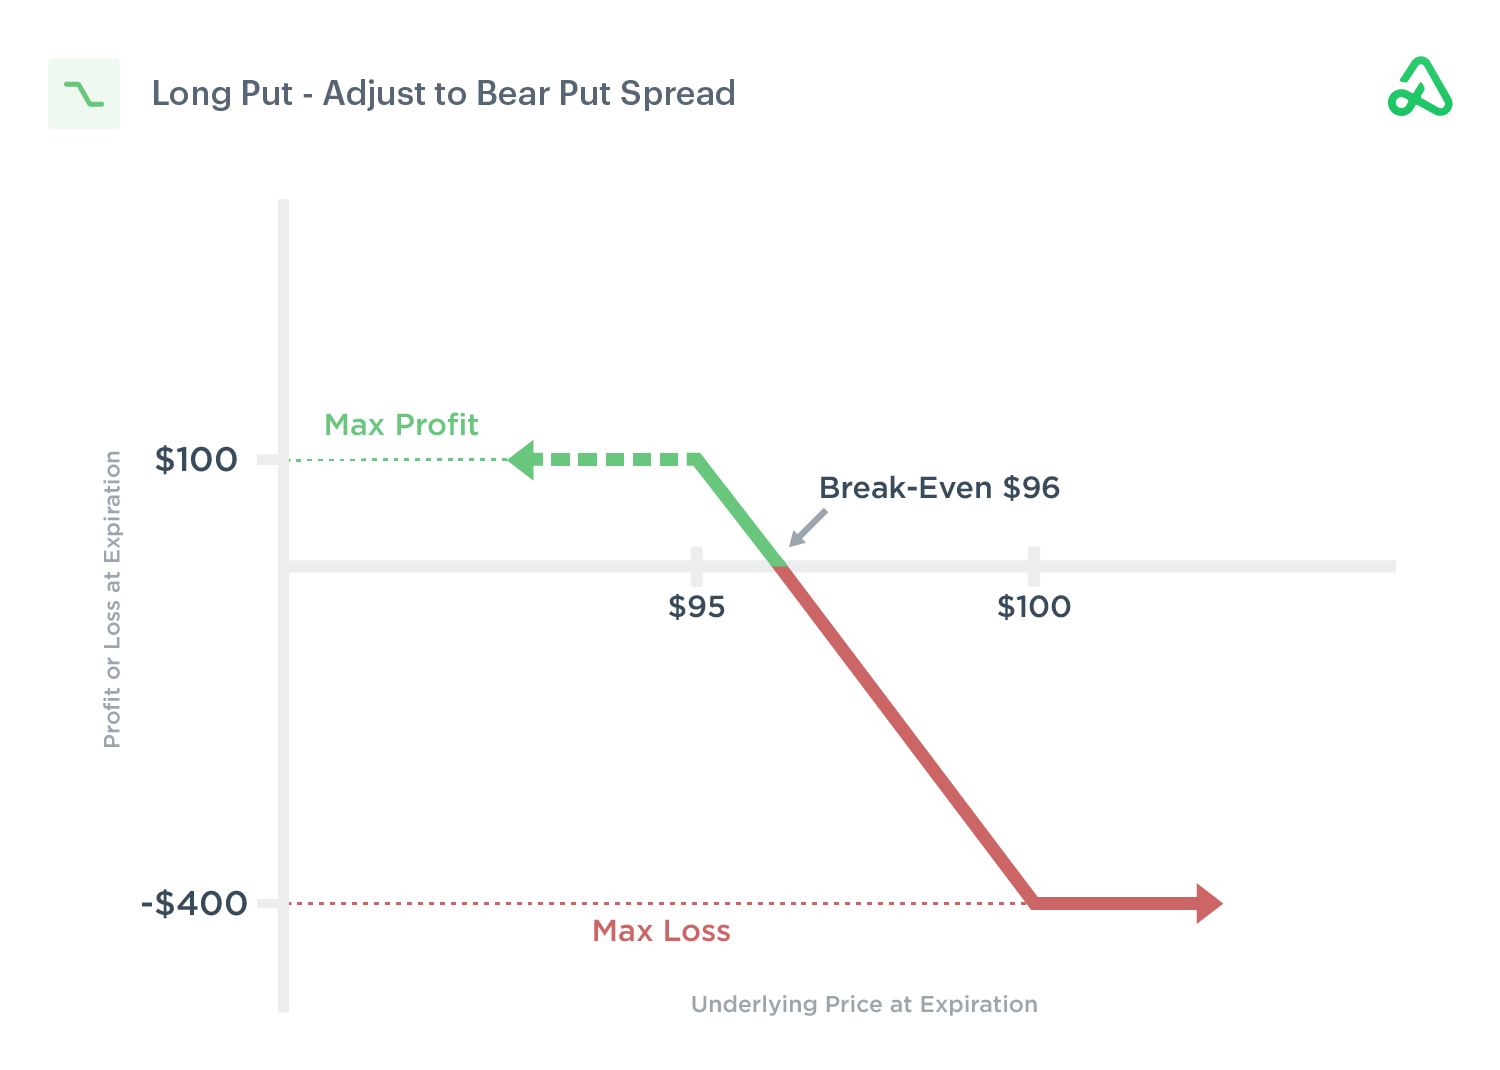 Image of a long put option adjusted to a bear put debit spread